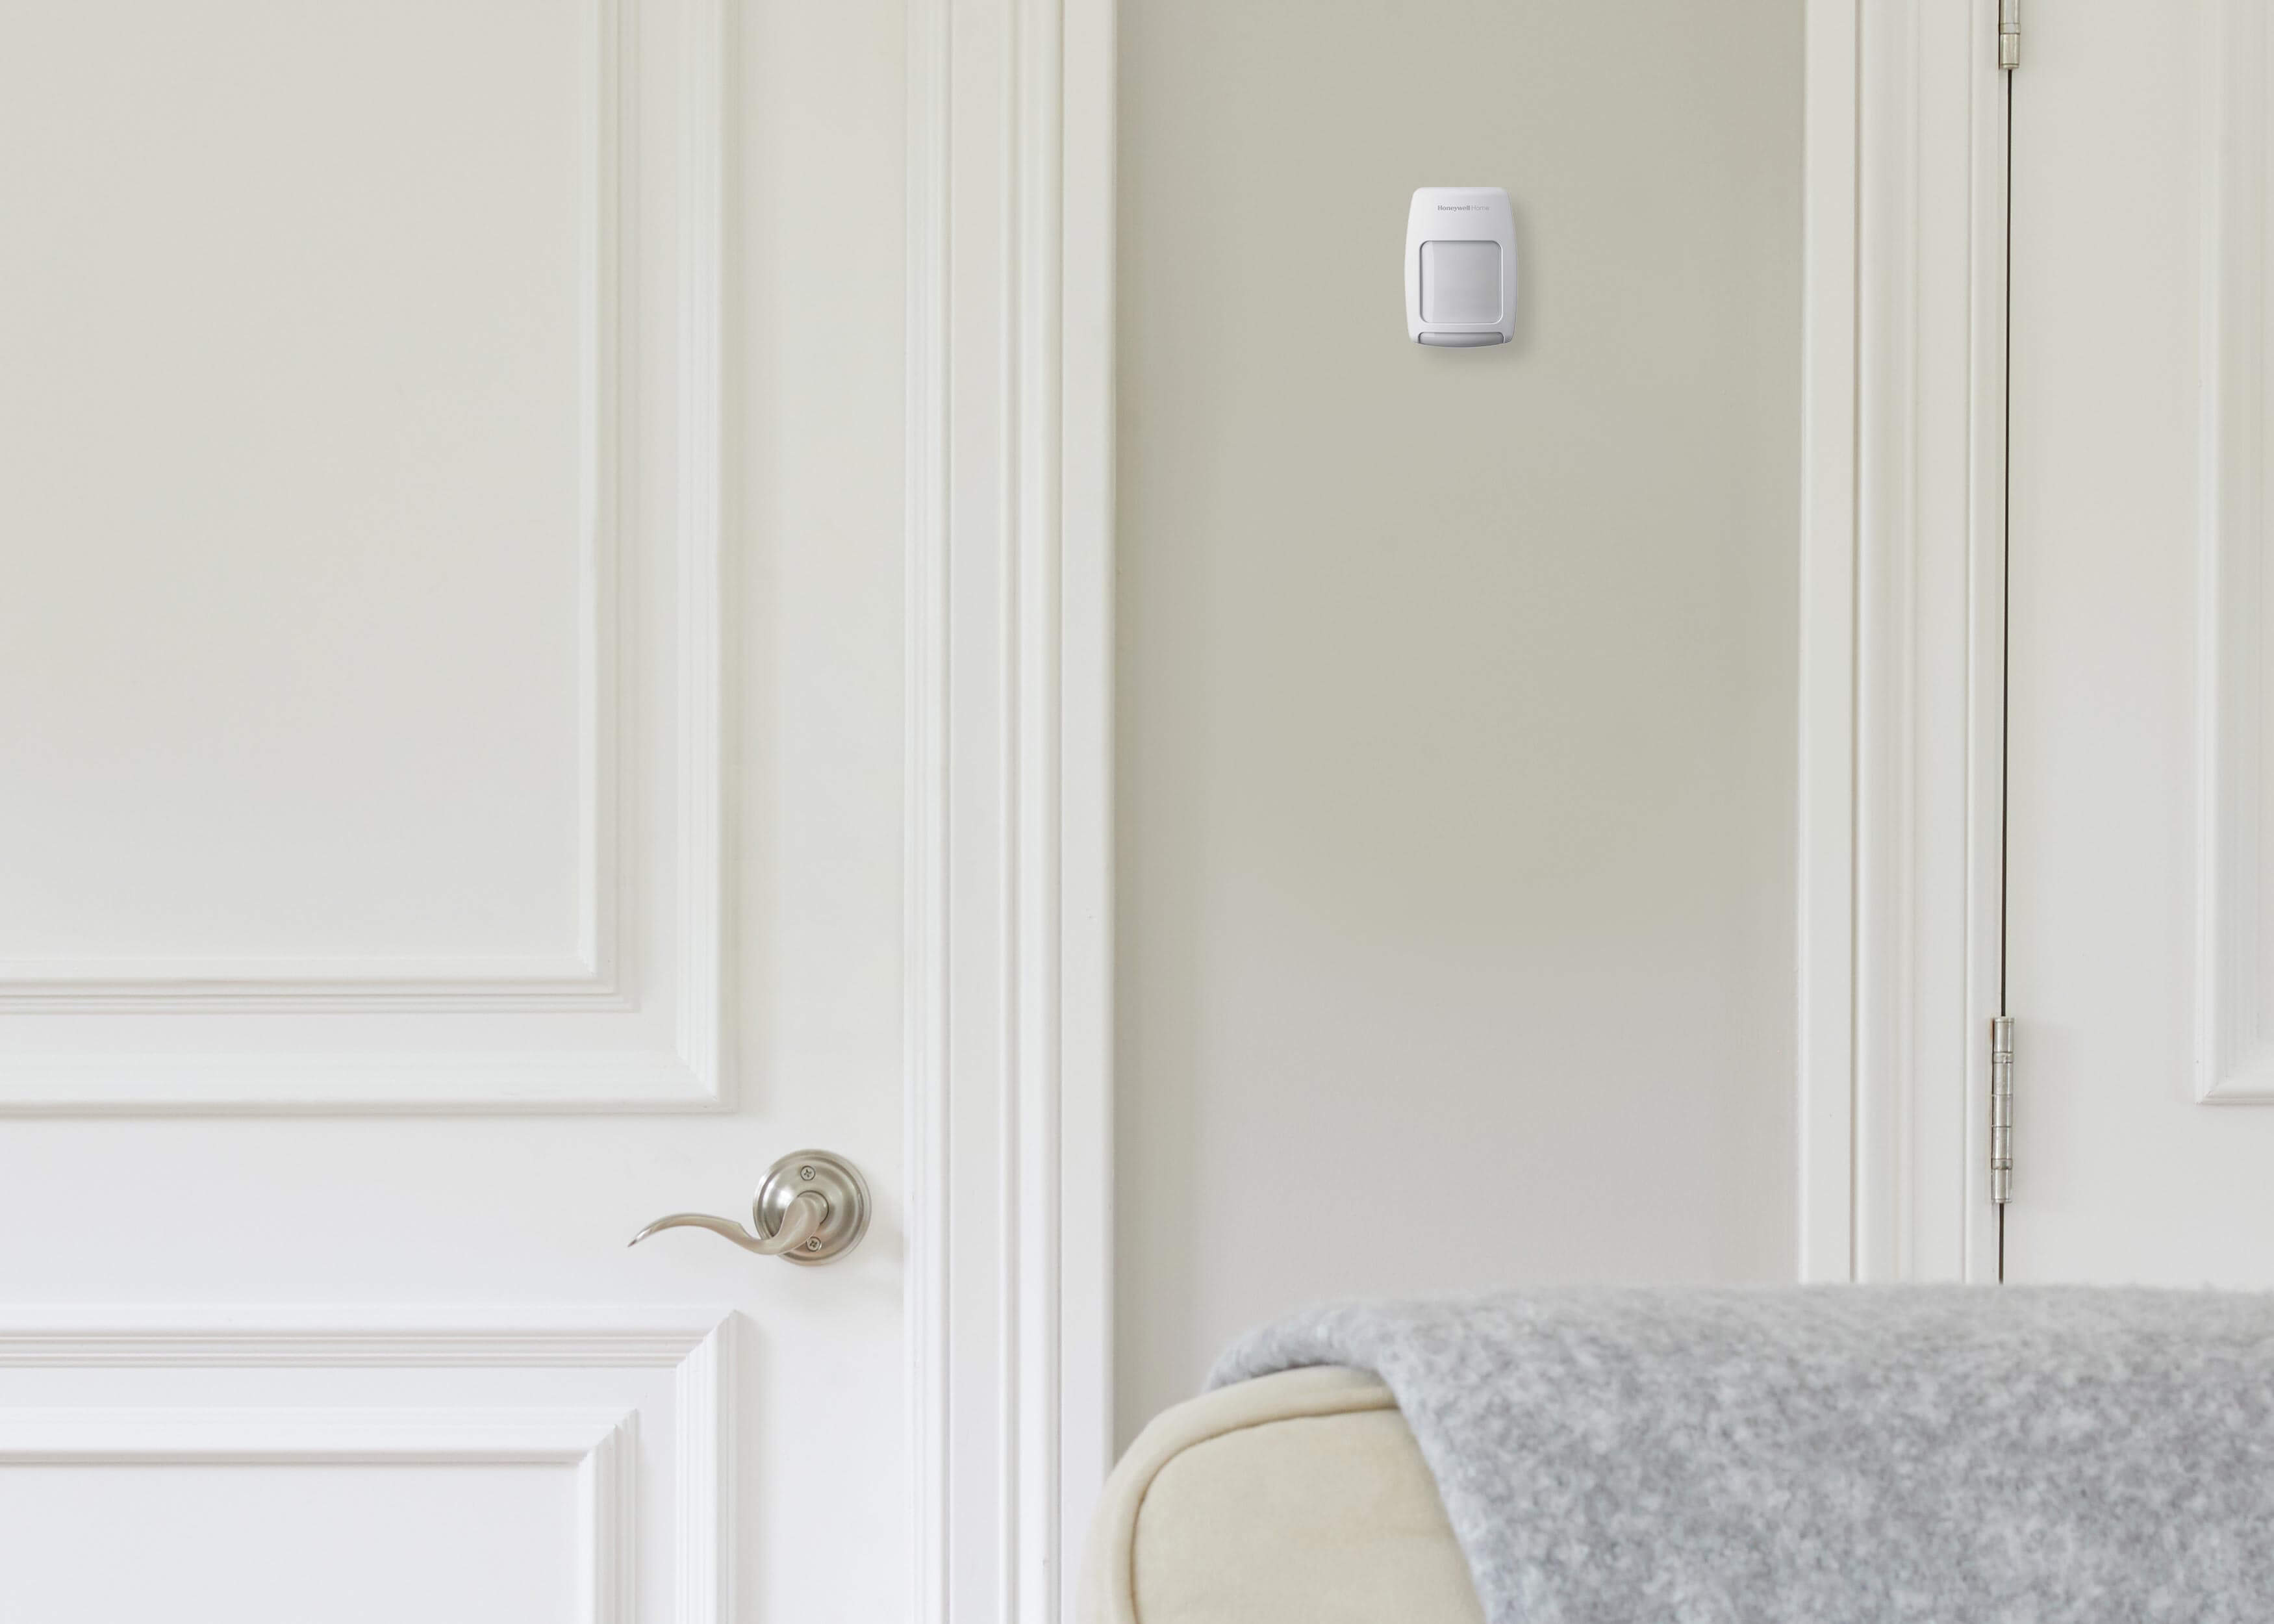 Contractor installing smart home product security solutions